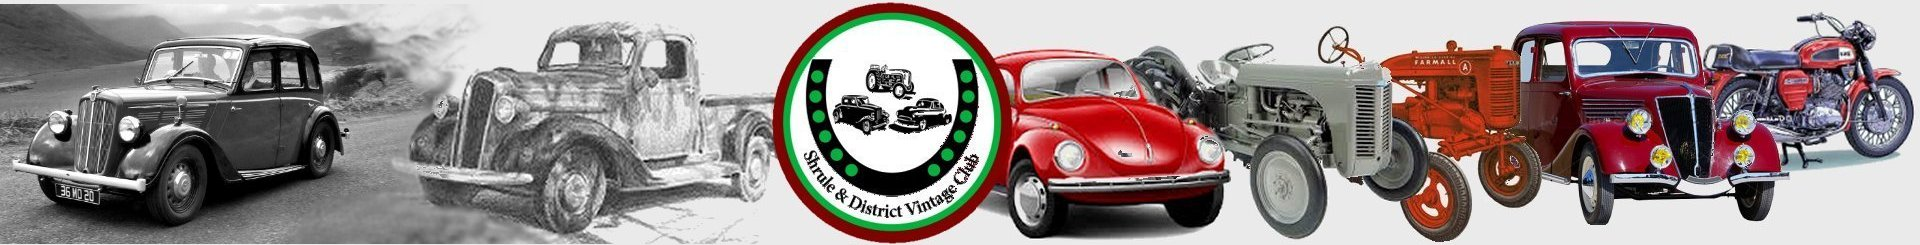 Shrule & District Vintage Club